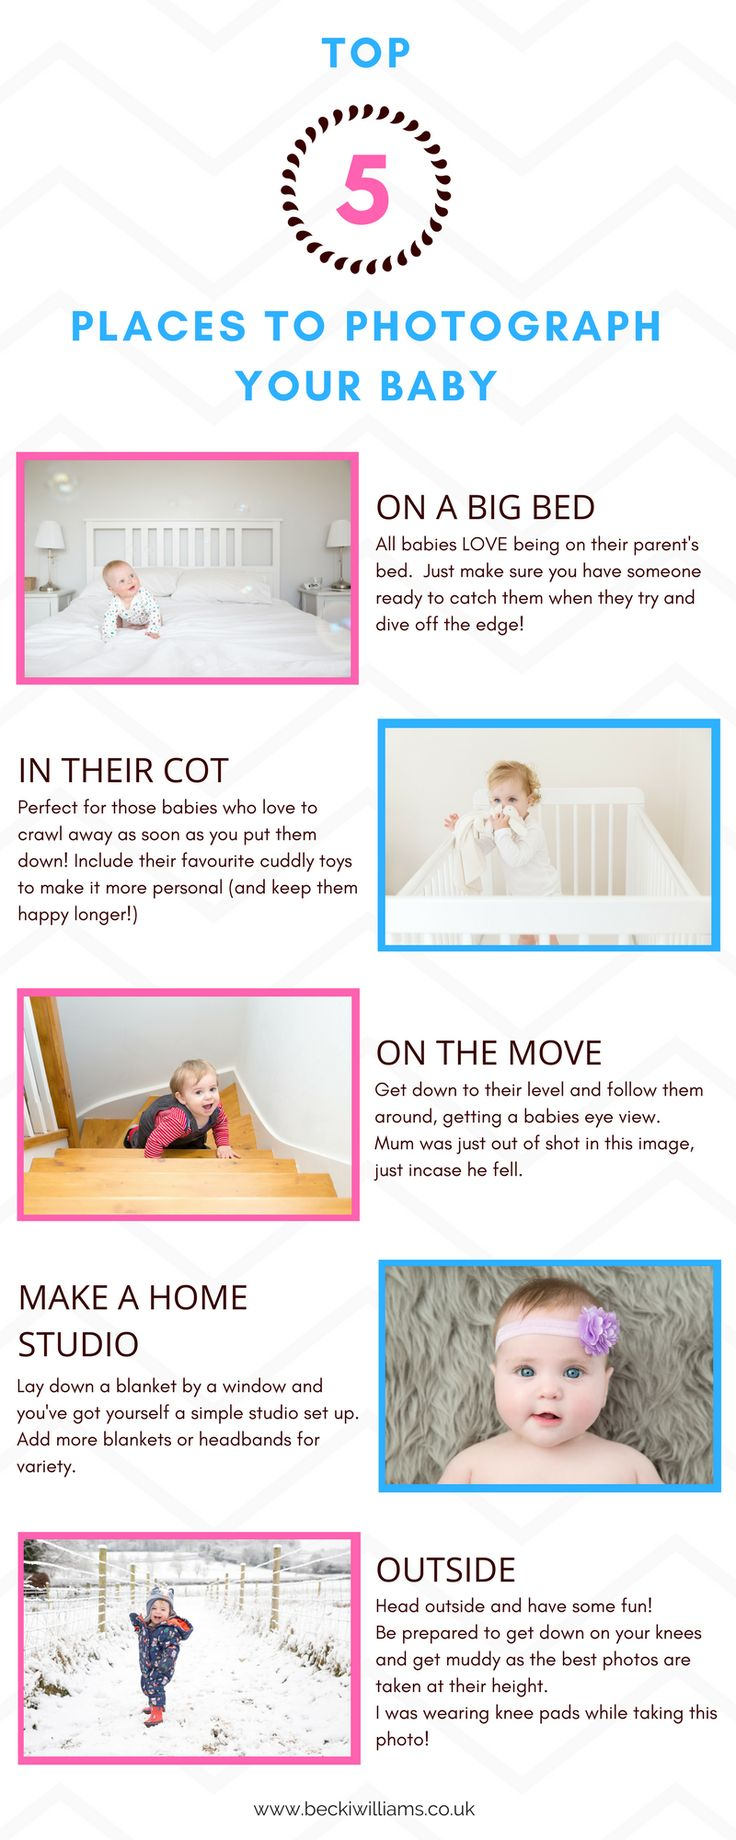 Top 5 Places to photography your baby.